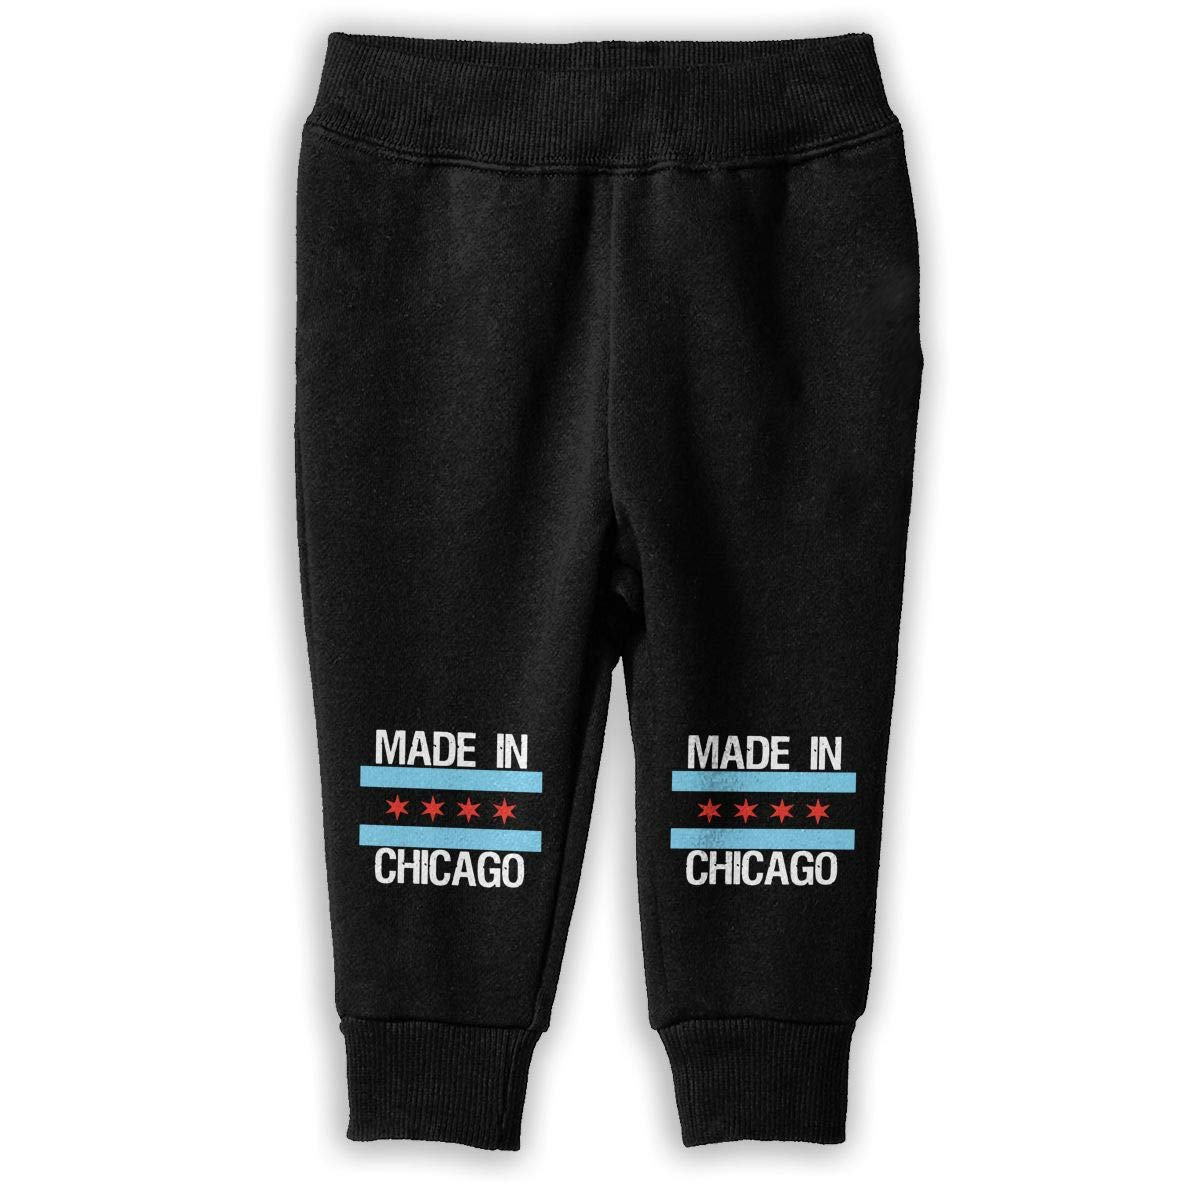 Made in Chicago Sweatpants Kids Training Pants